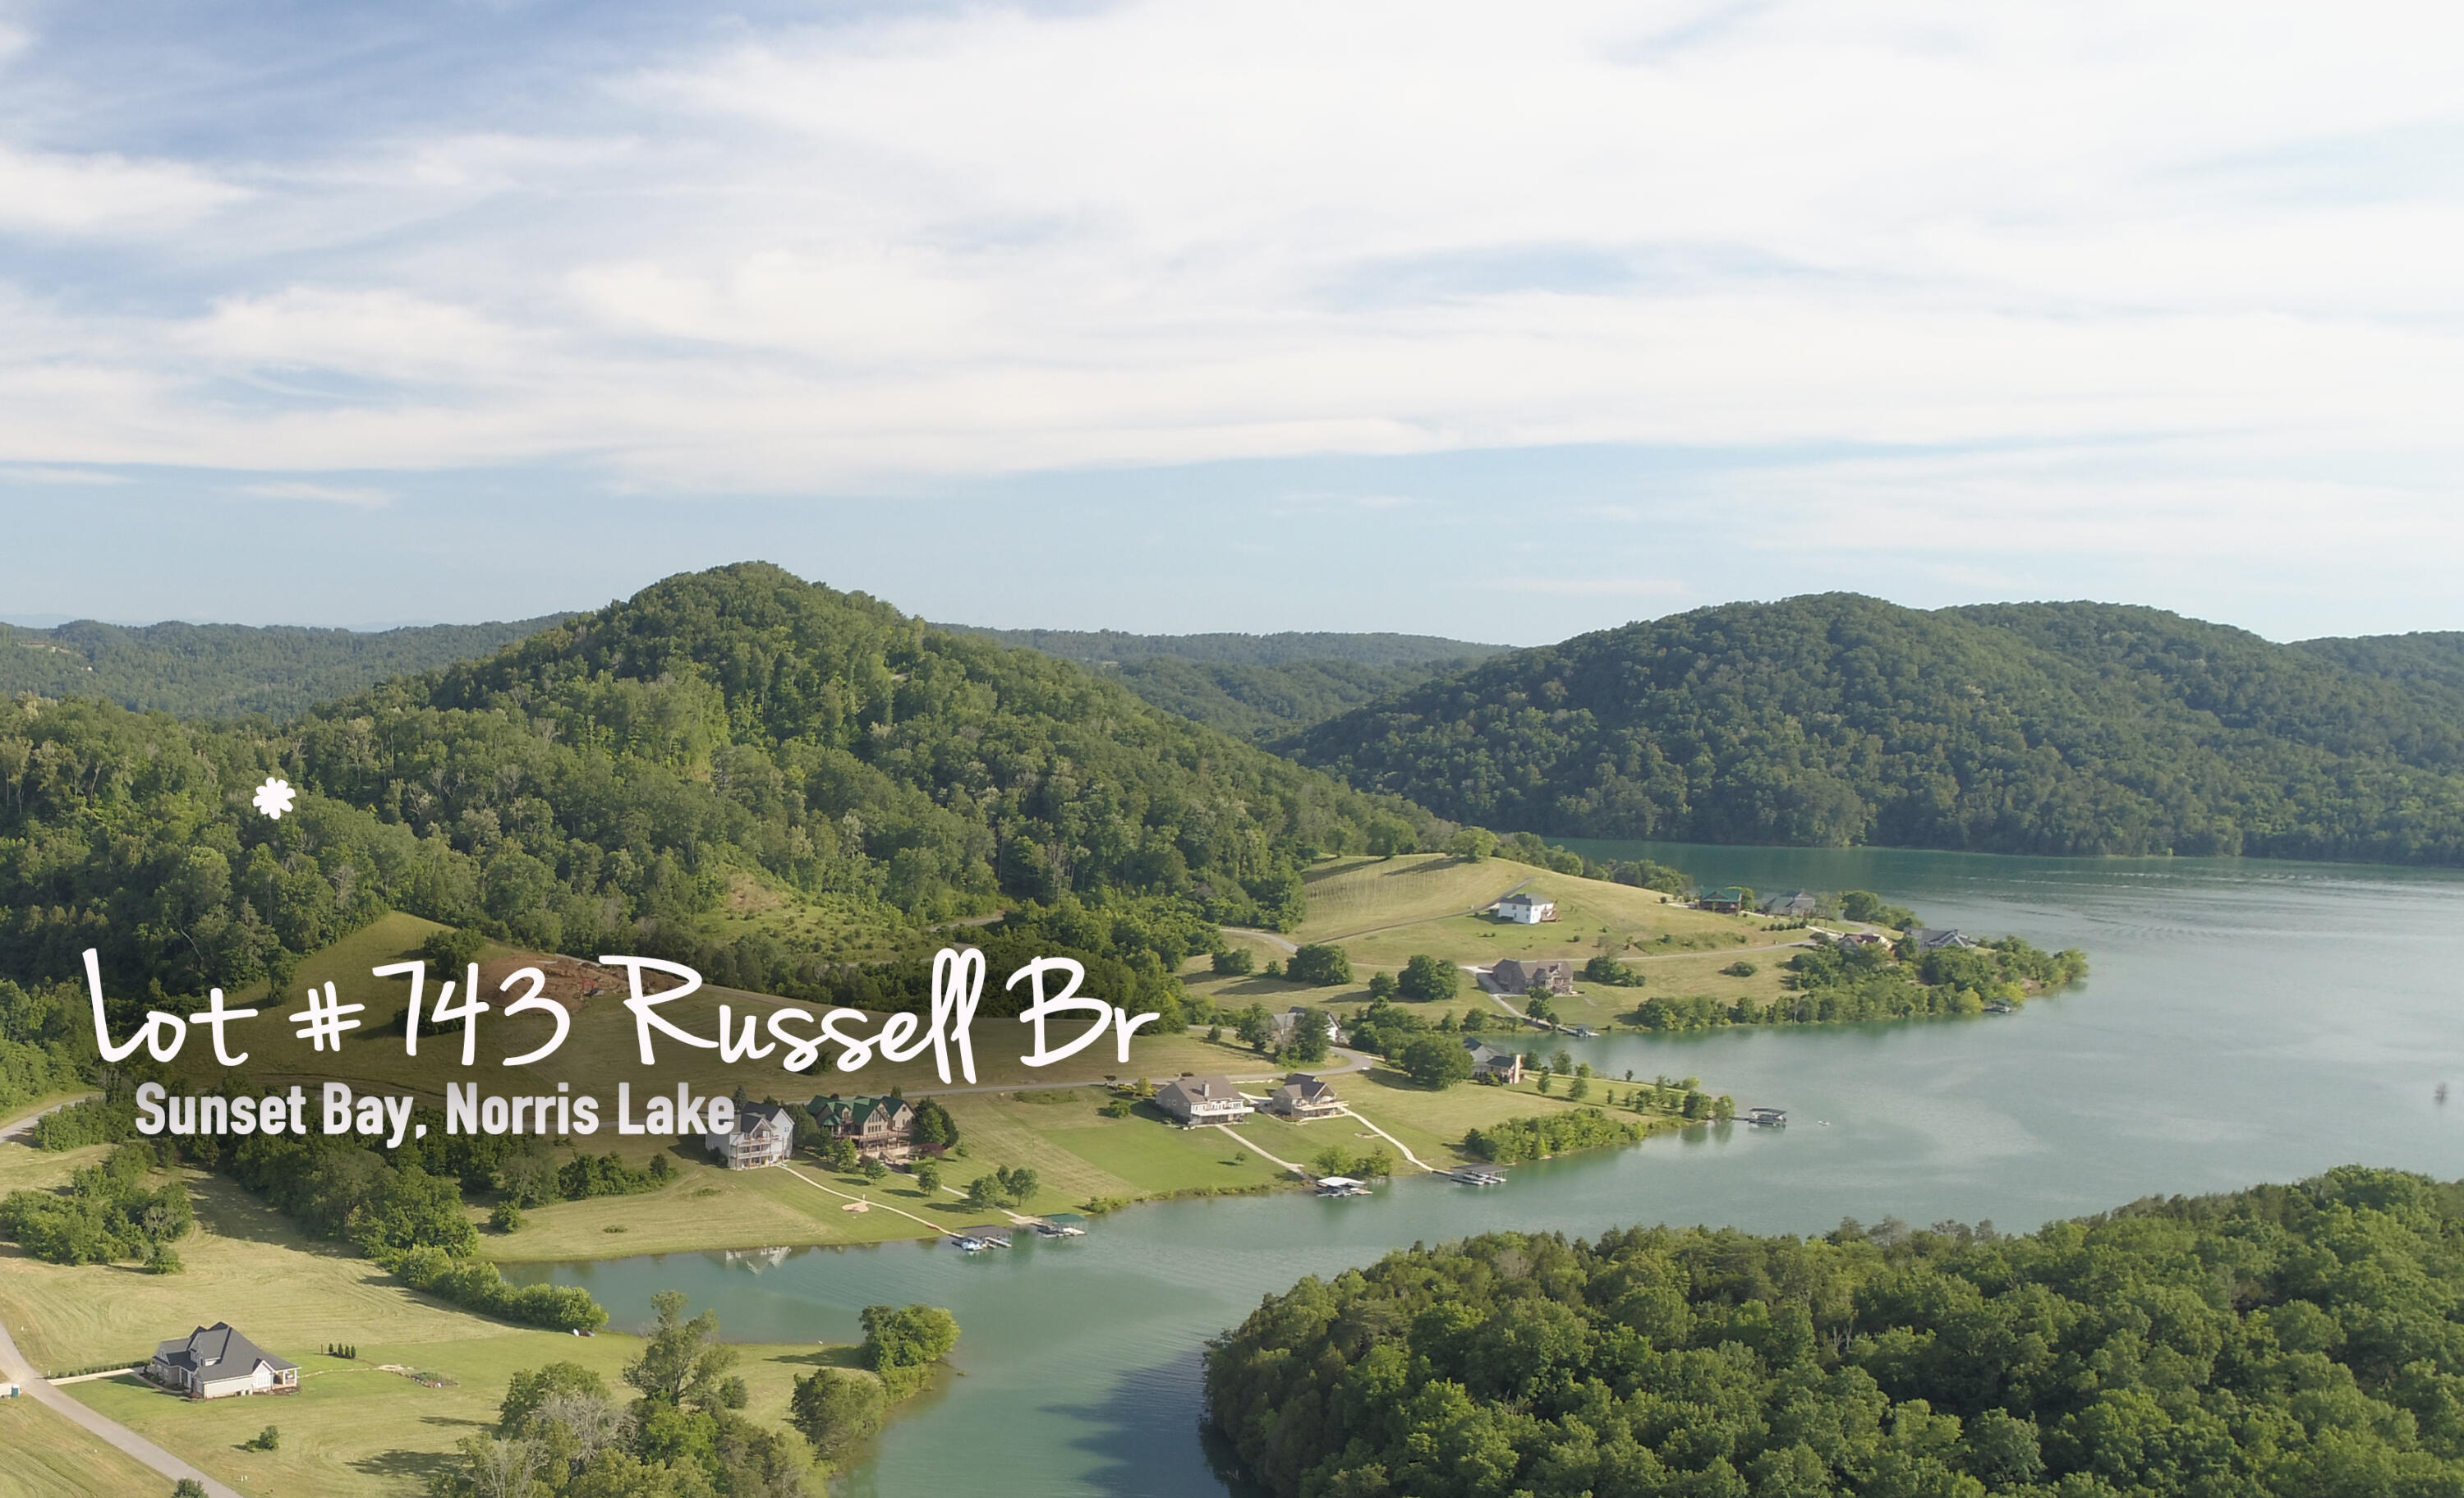 Lot 743 Russell Brothers Rd: